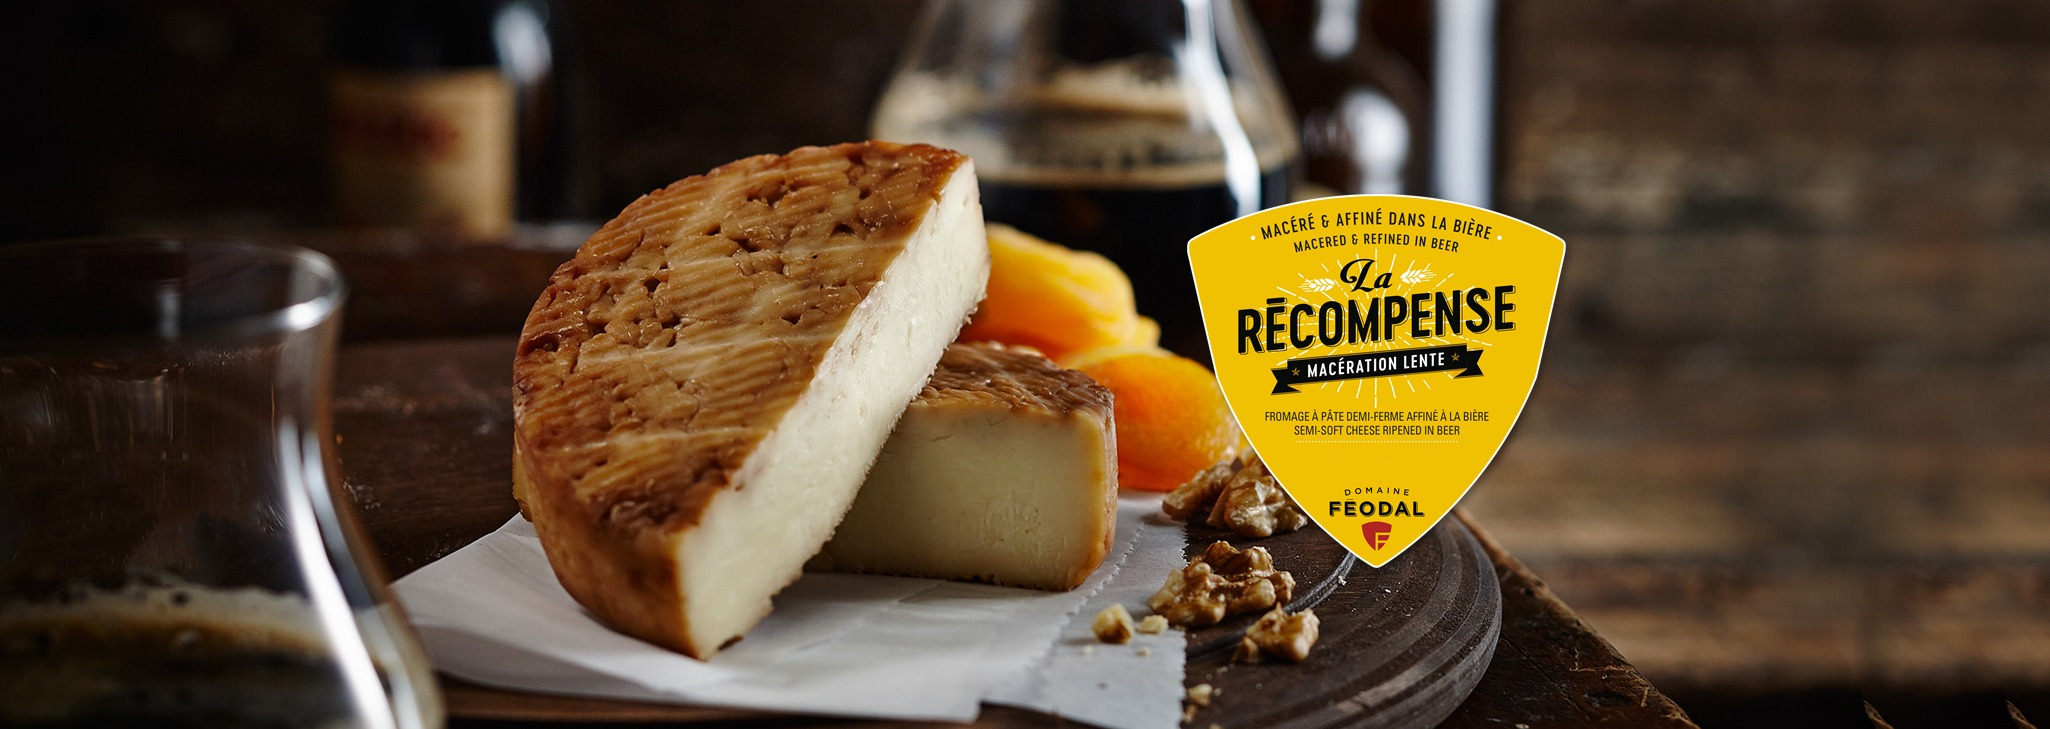 recompense-fromage